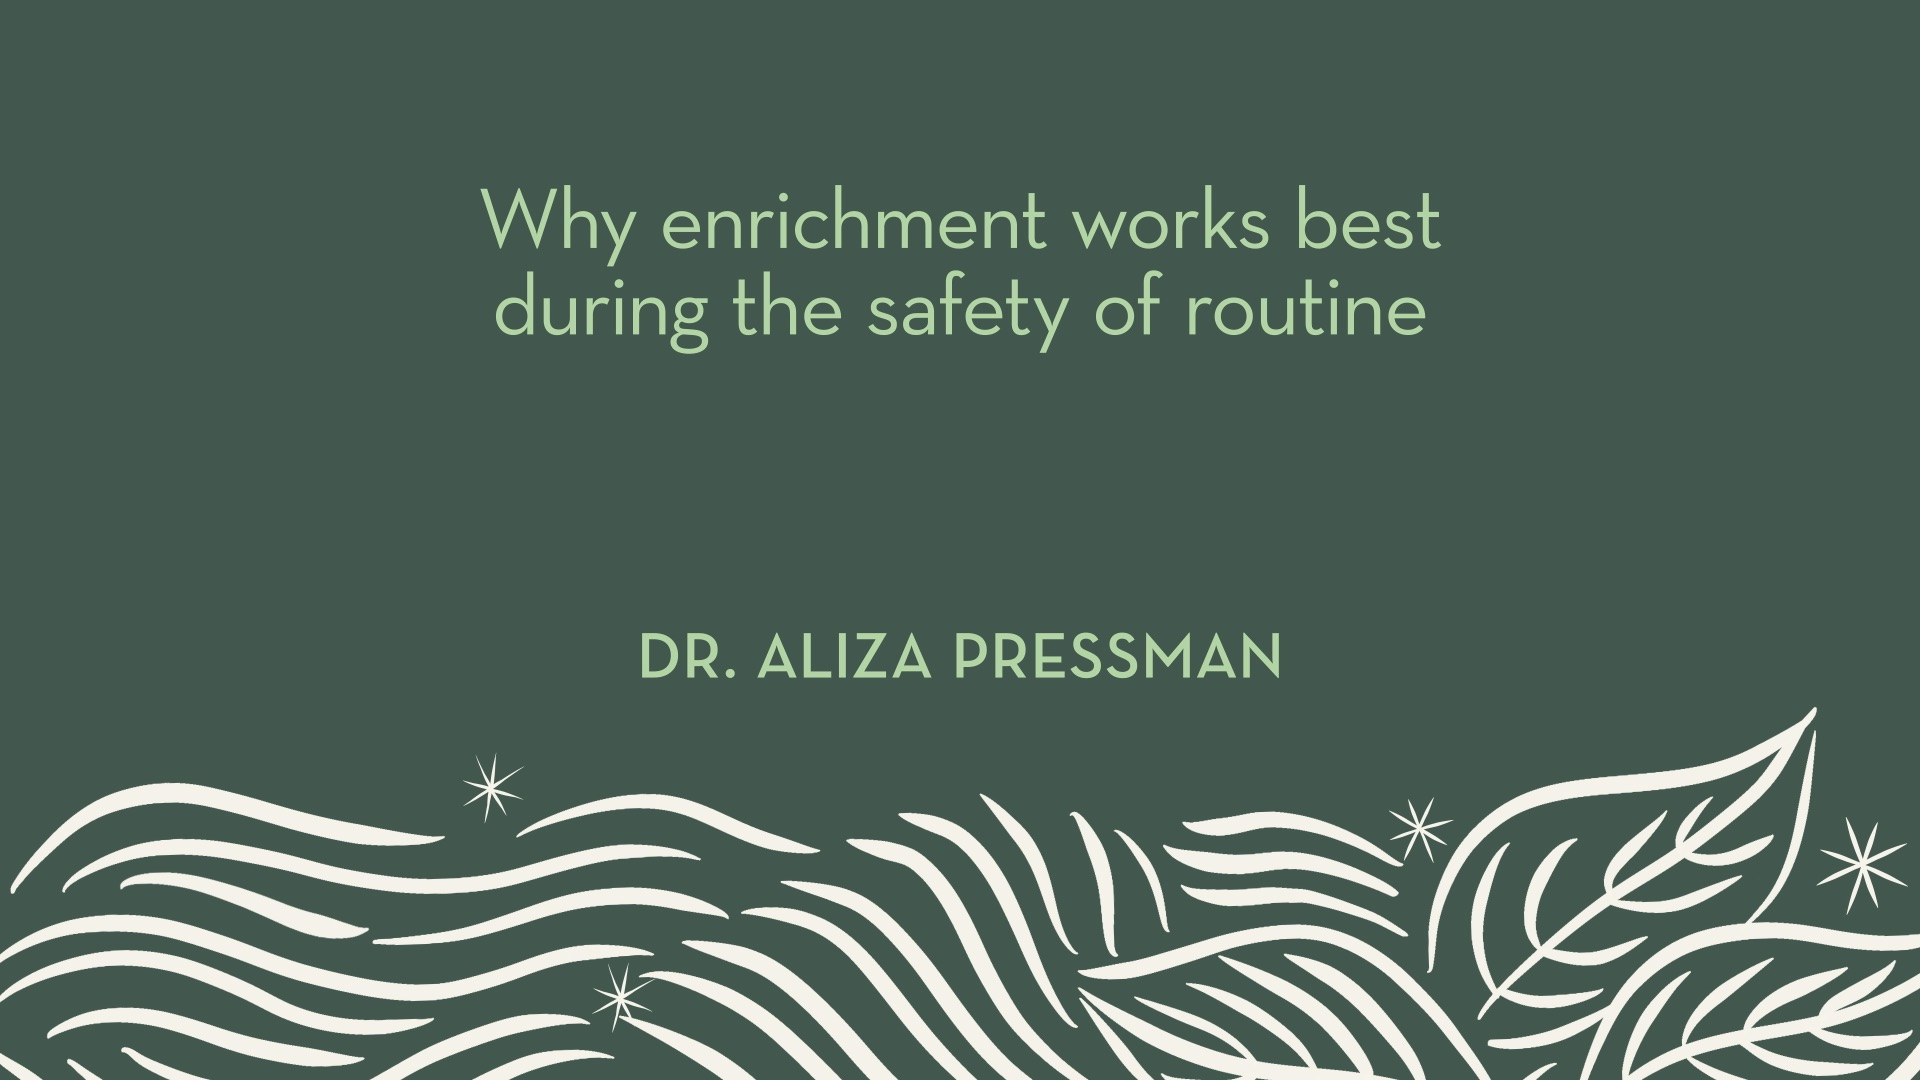 Dr. Pressman | Why enrichment works best during the safety of routine